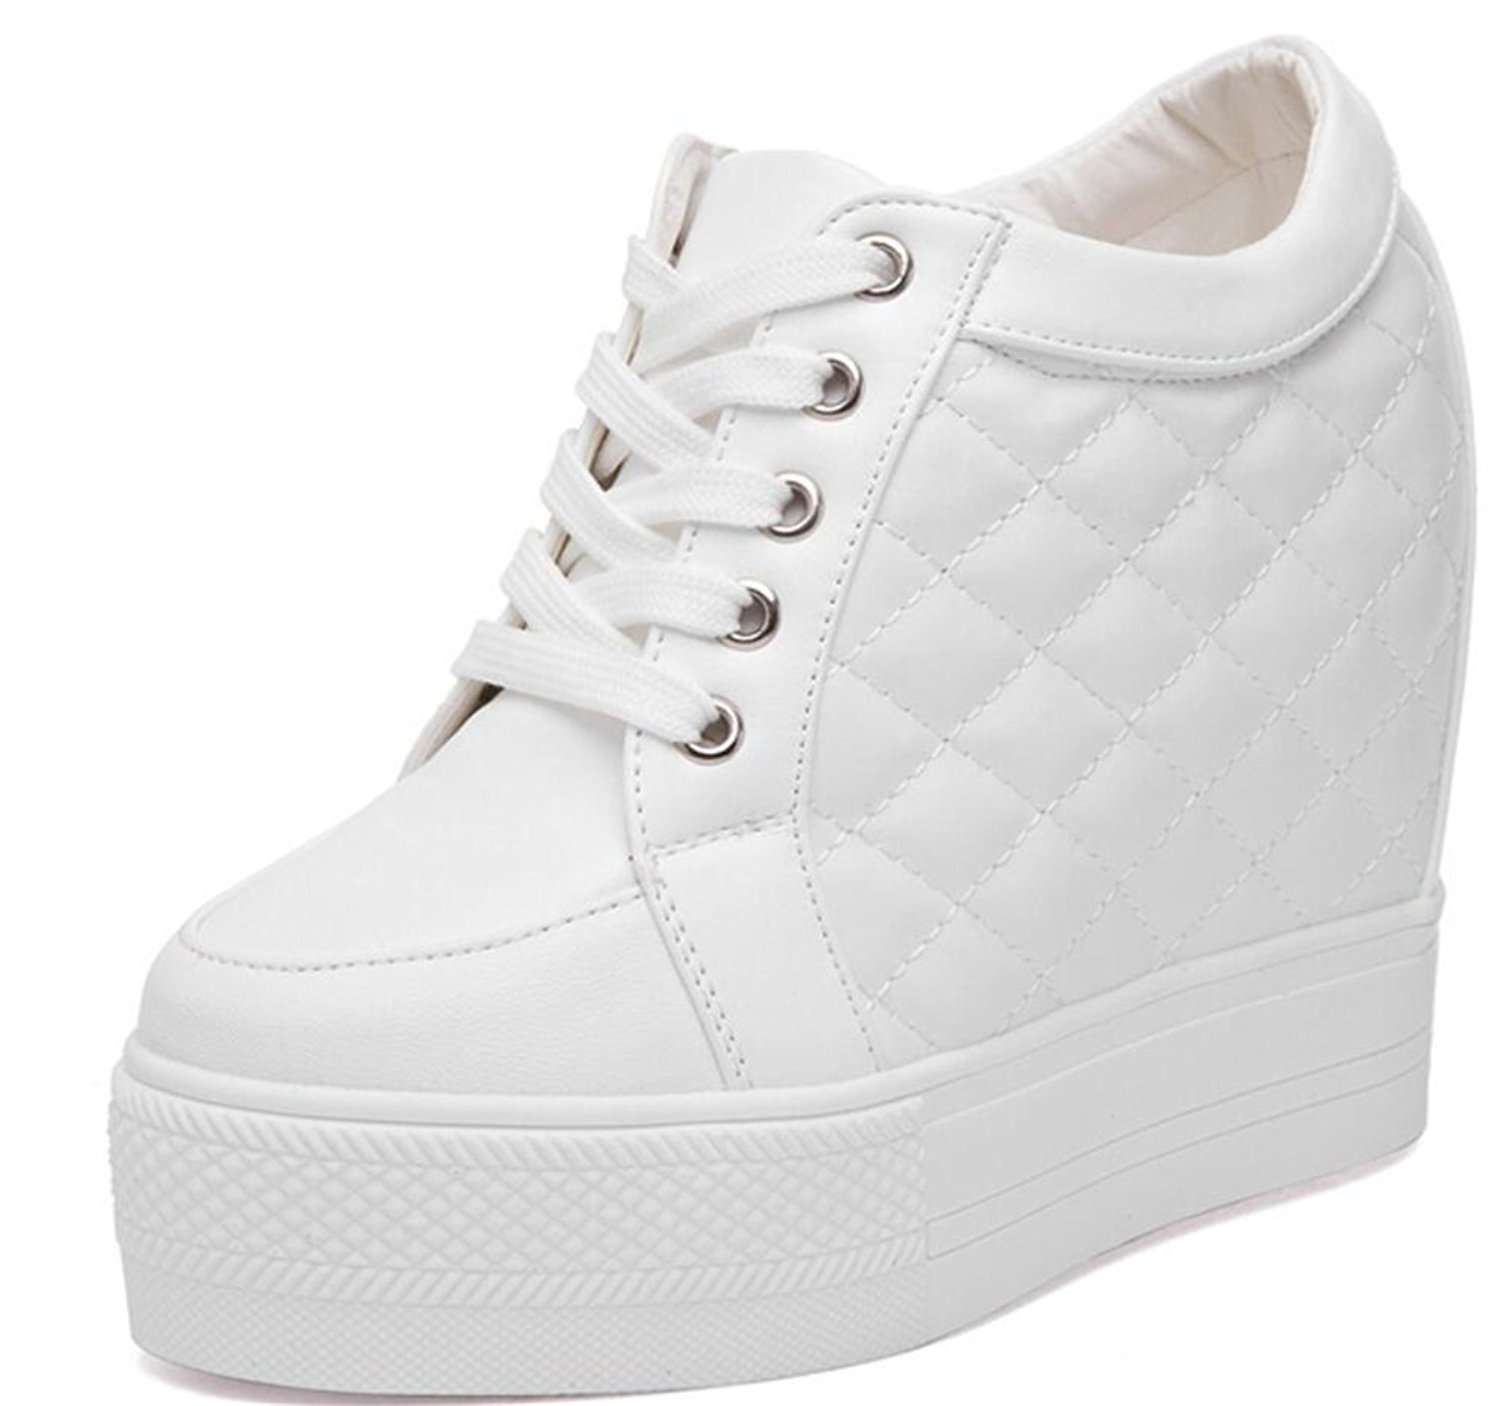 a52d39bde7b9 Get Quotations · Wedges Sneakers for Women White